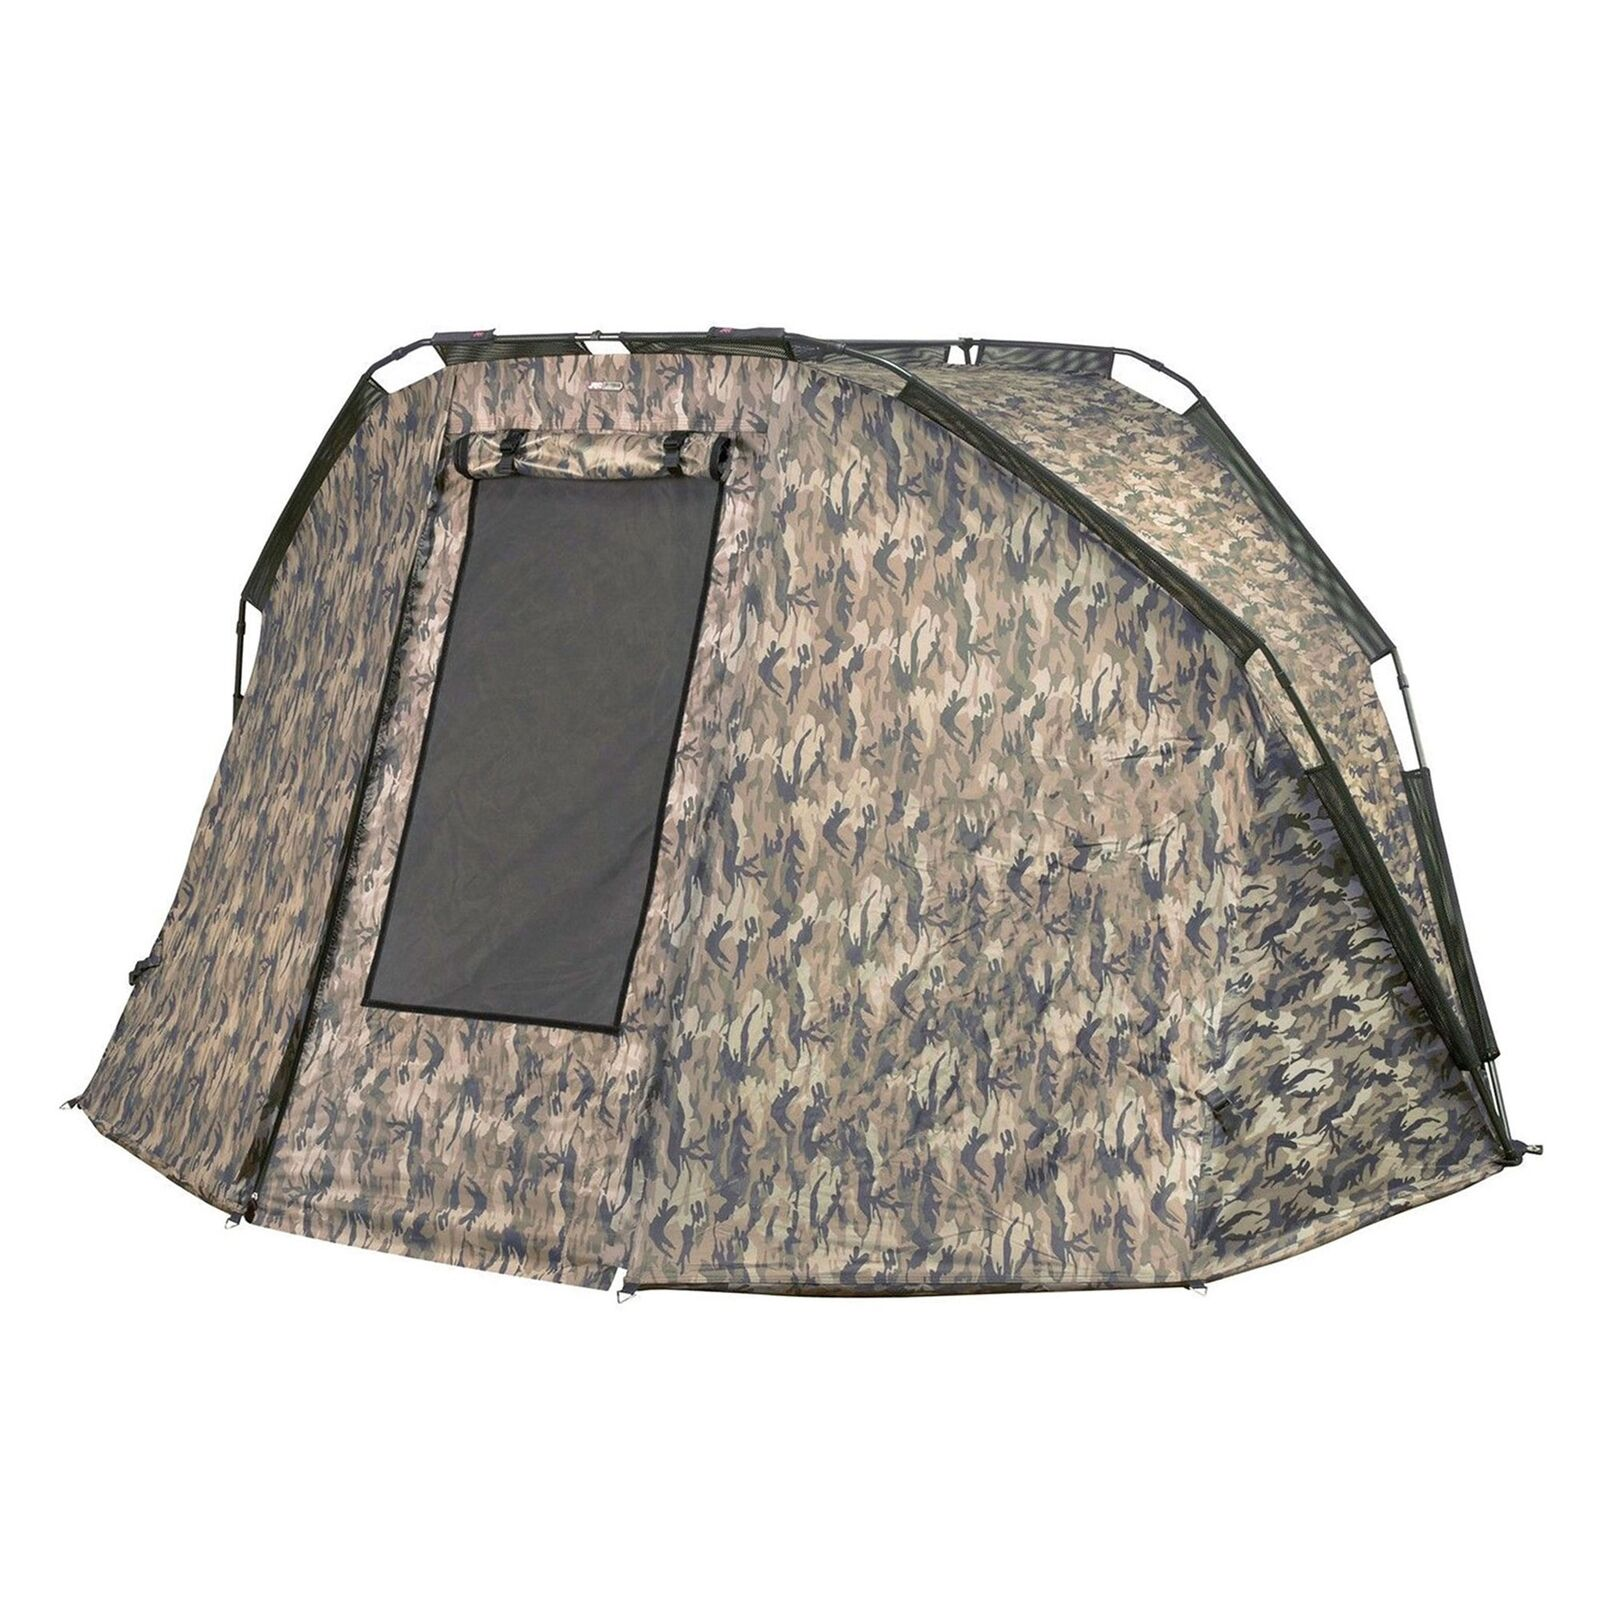 JRC Contact Camou 1 man Bivvy Camouflage Karpfenzelt Tarnmuster 1 Persoon